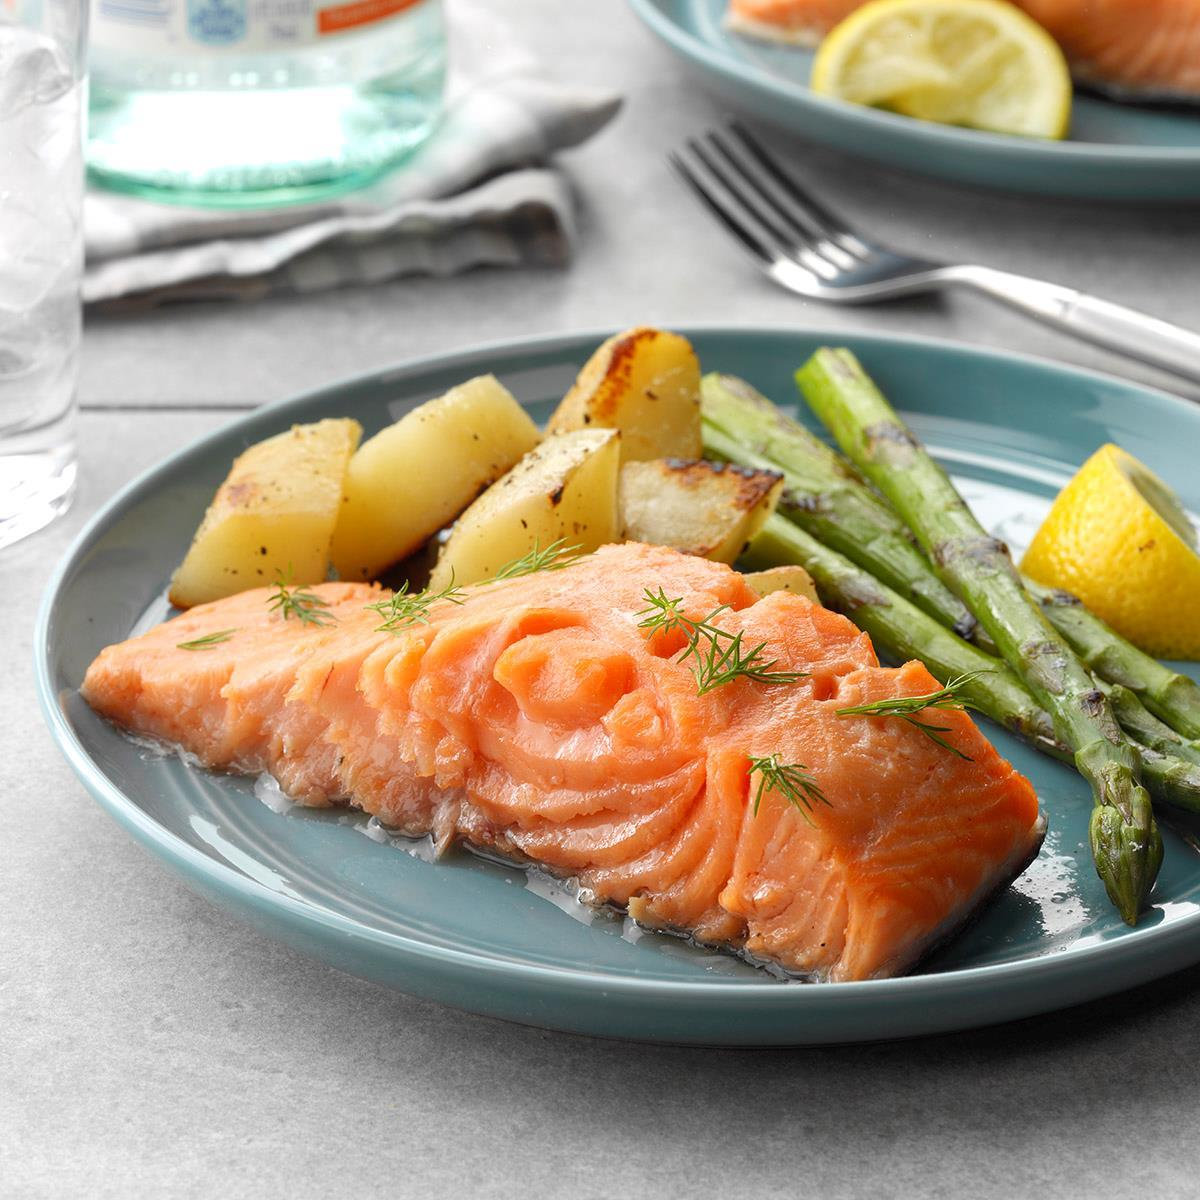 Easy Poached Salmon Recipe: How to Make It | Taste of Home